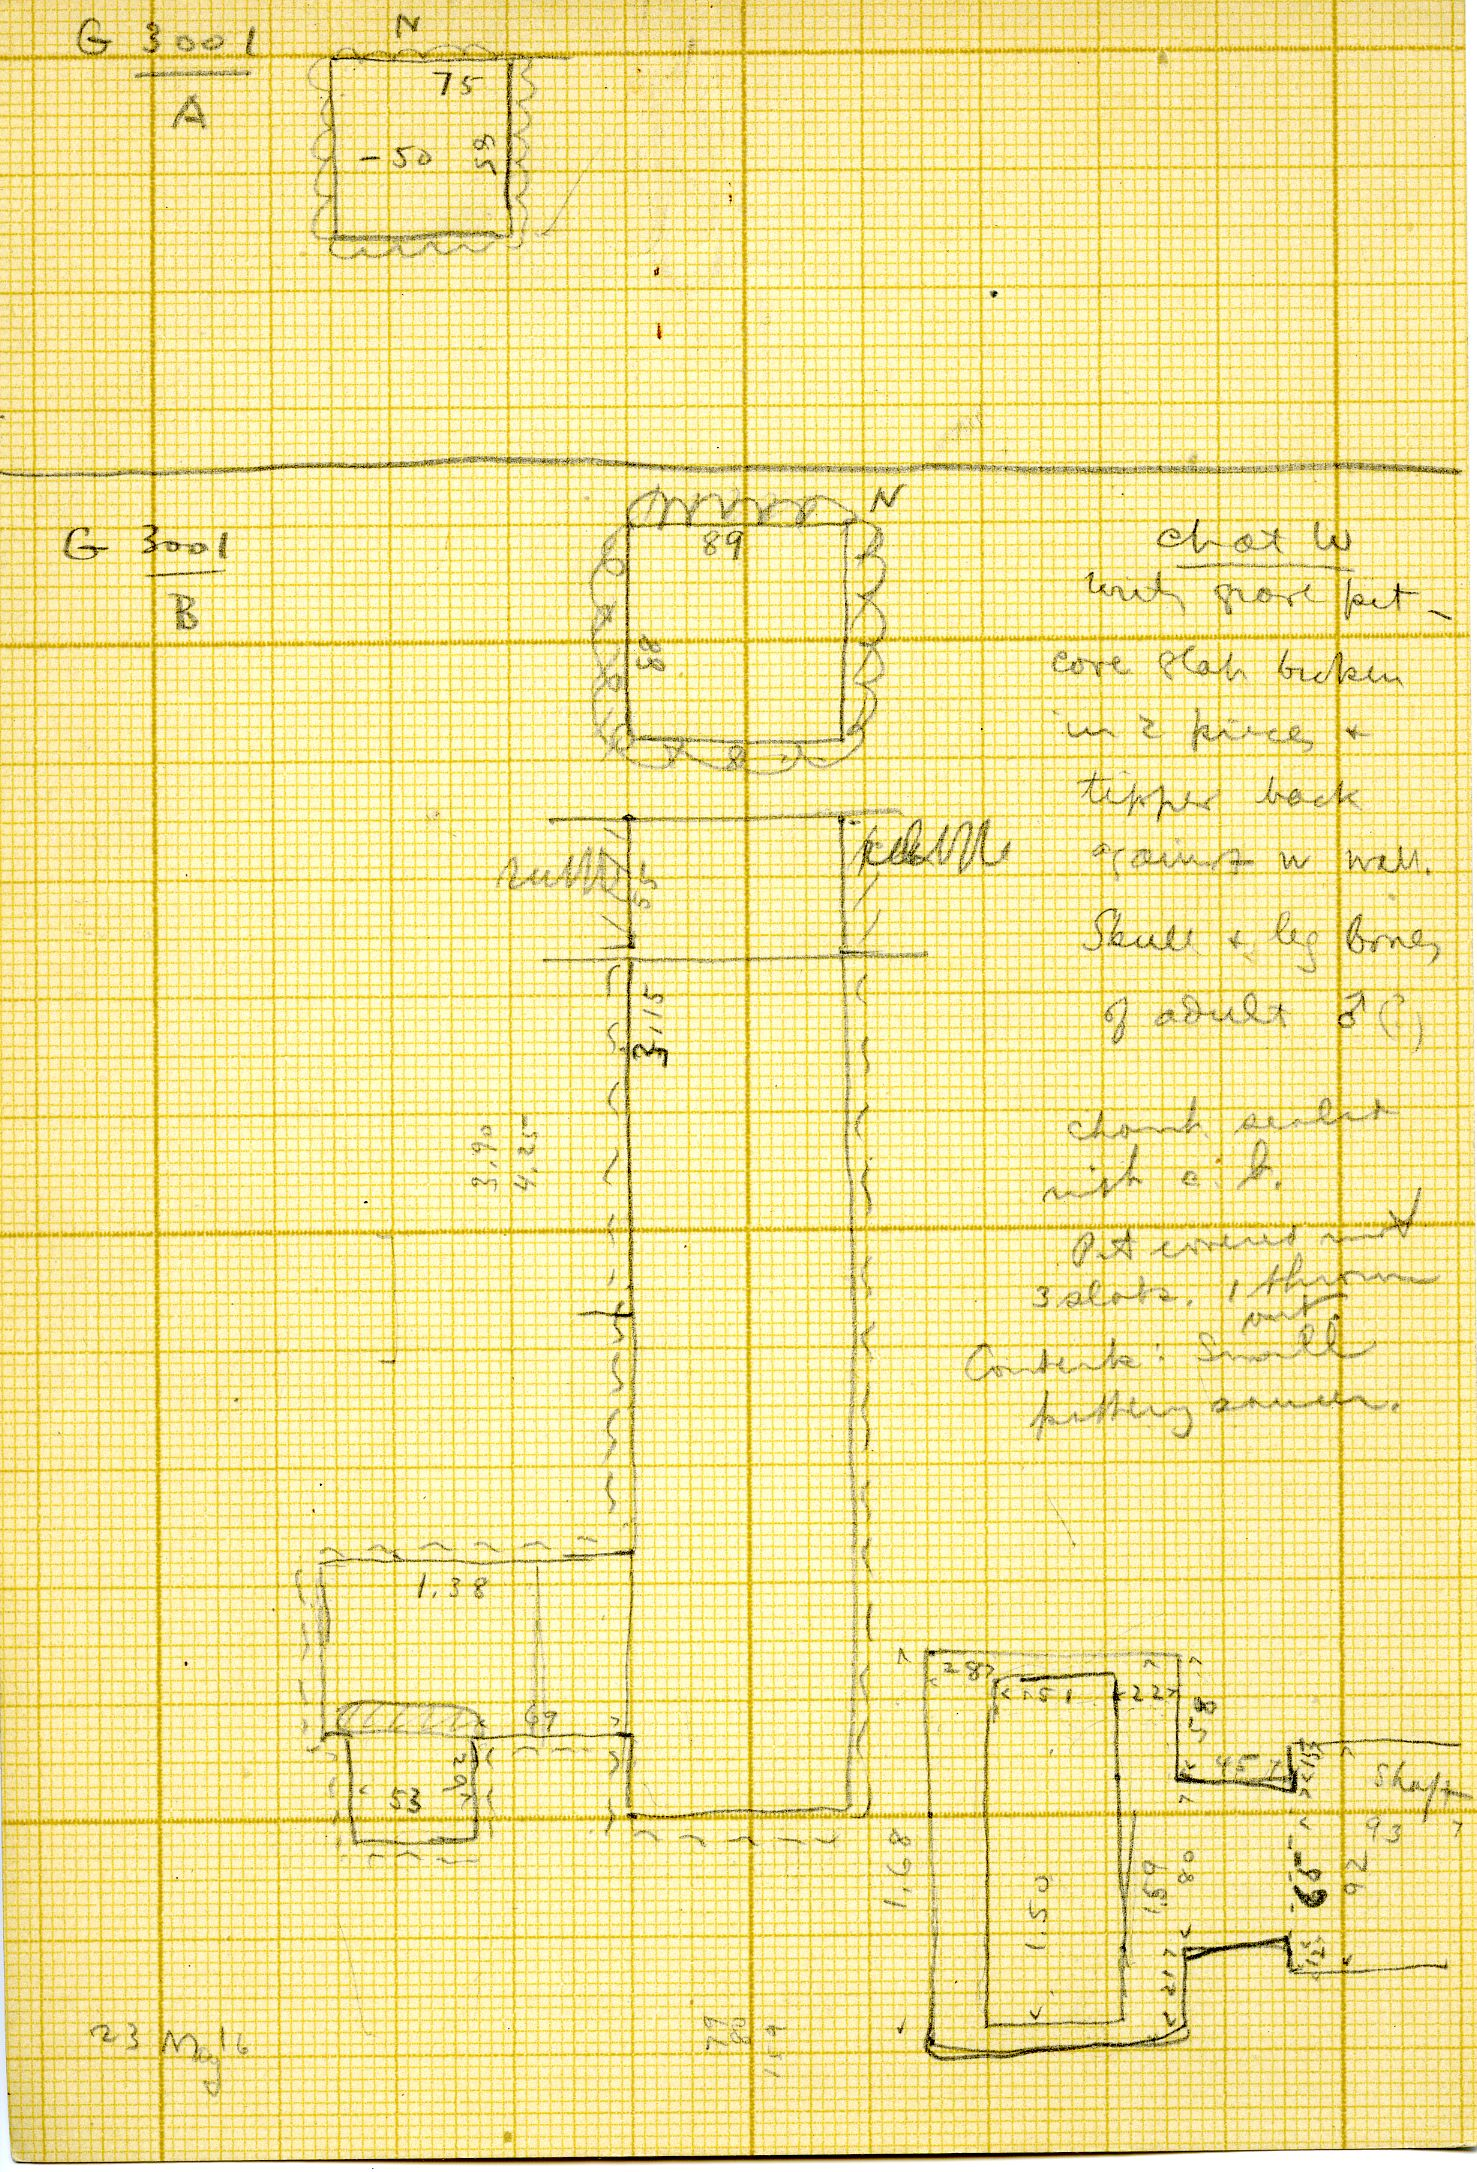 Maps and plans: G 3001, Shafts A, B